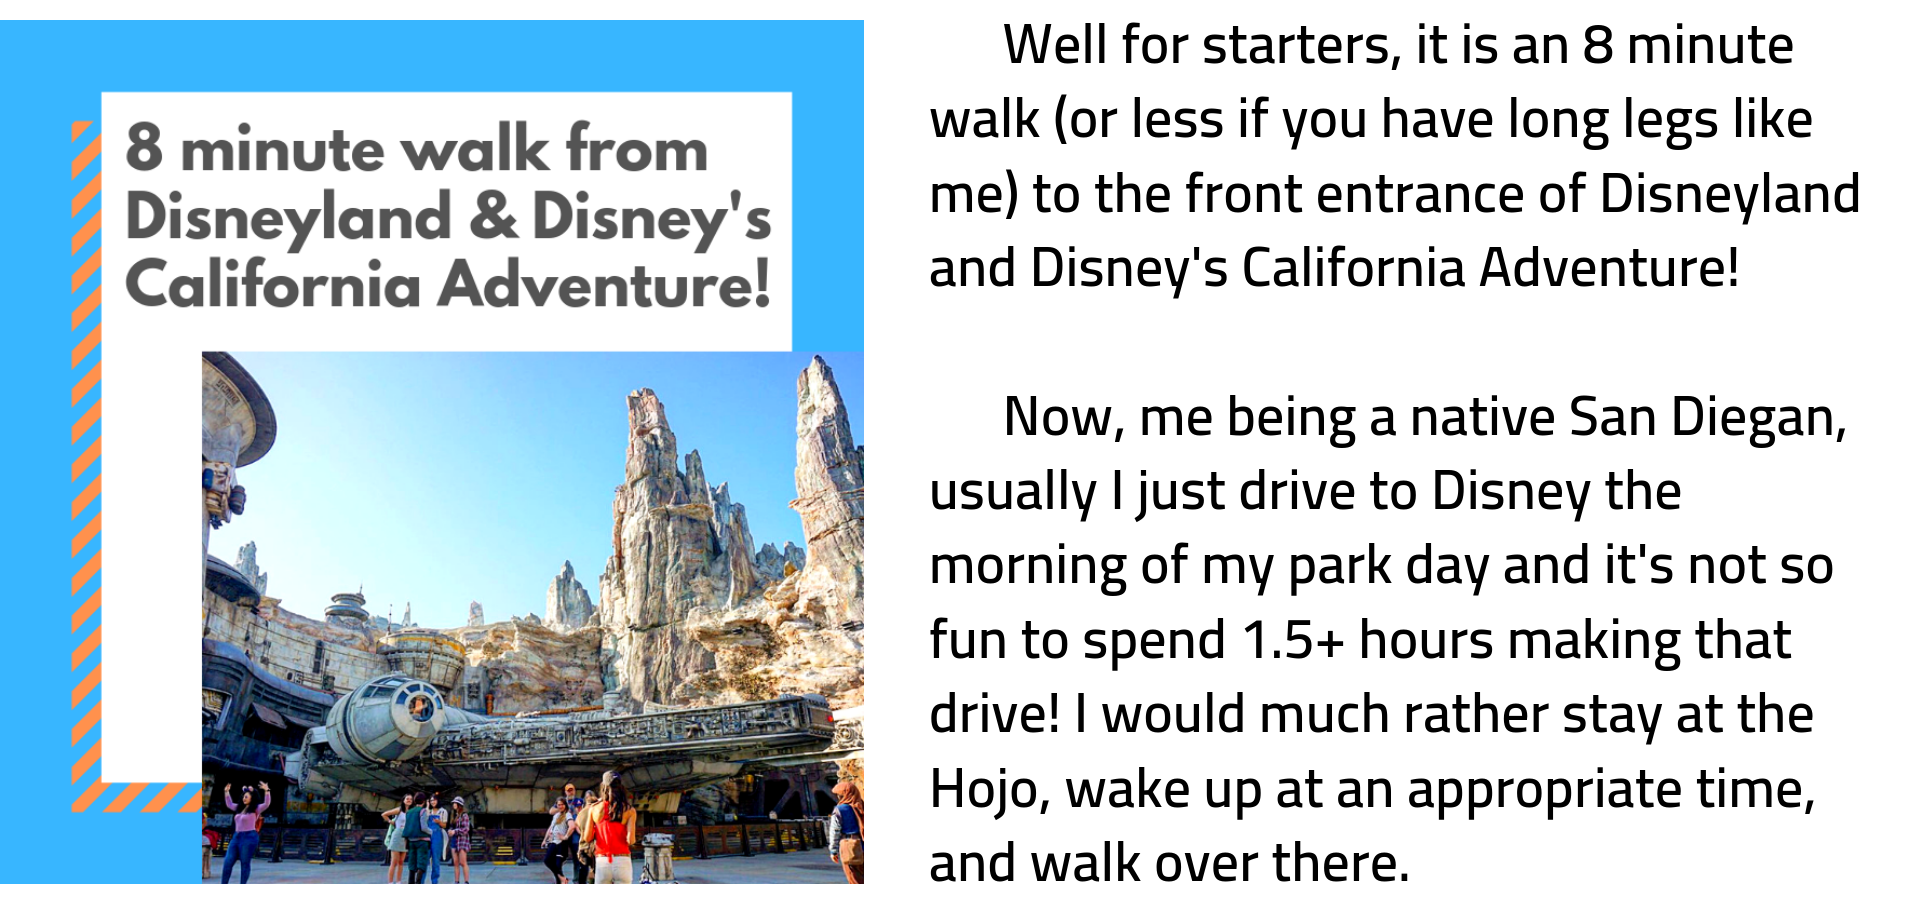 Well for starters, it is an 8 minute walk (or less if you have long legs like me) to the front entrance of Disneyland and Disney's California Adventure!         Now, me being a native San Diegan, usually I just drive to Disney the morning of my park day and it's not so fun to spend 1.5+ hours making that drive! I would much rather stay at the Hojo, wake up at an appropriate time, and walk over there.